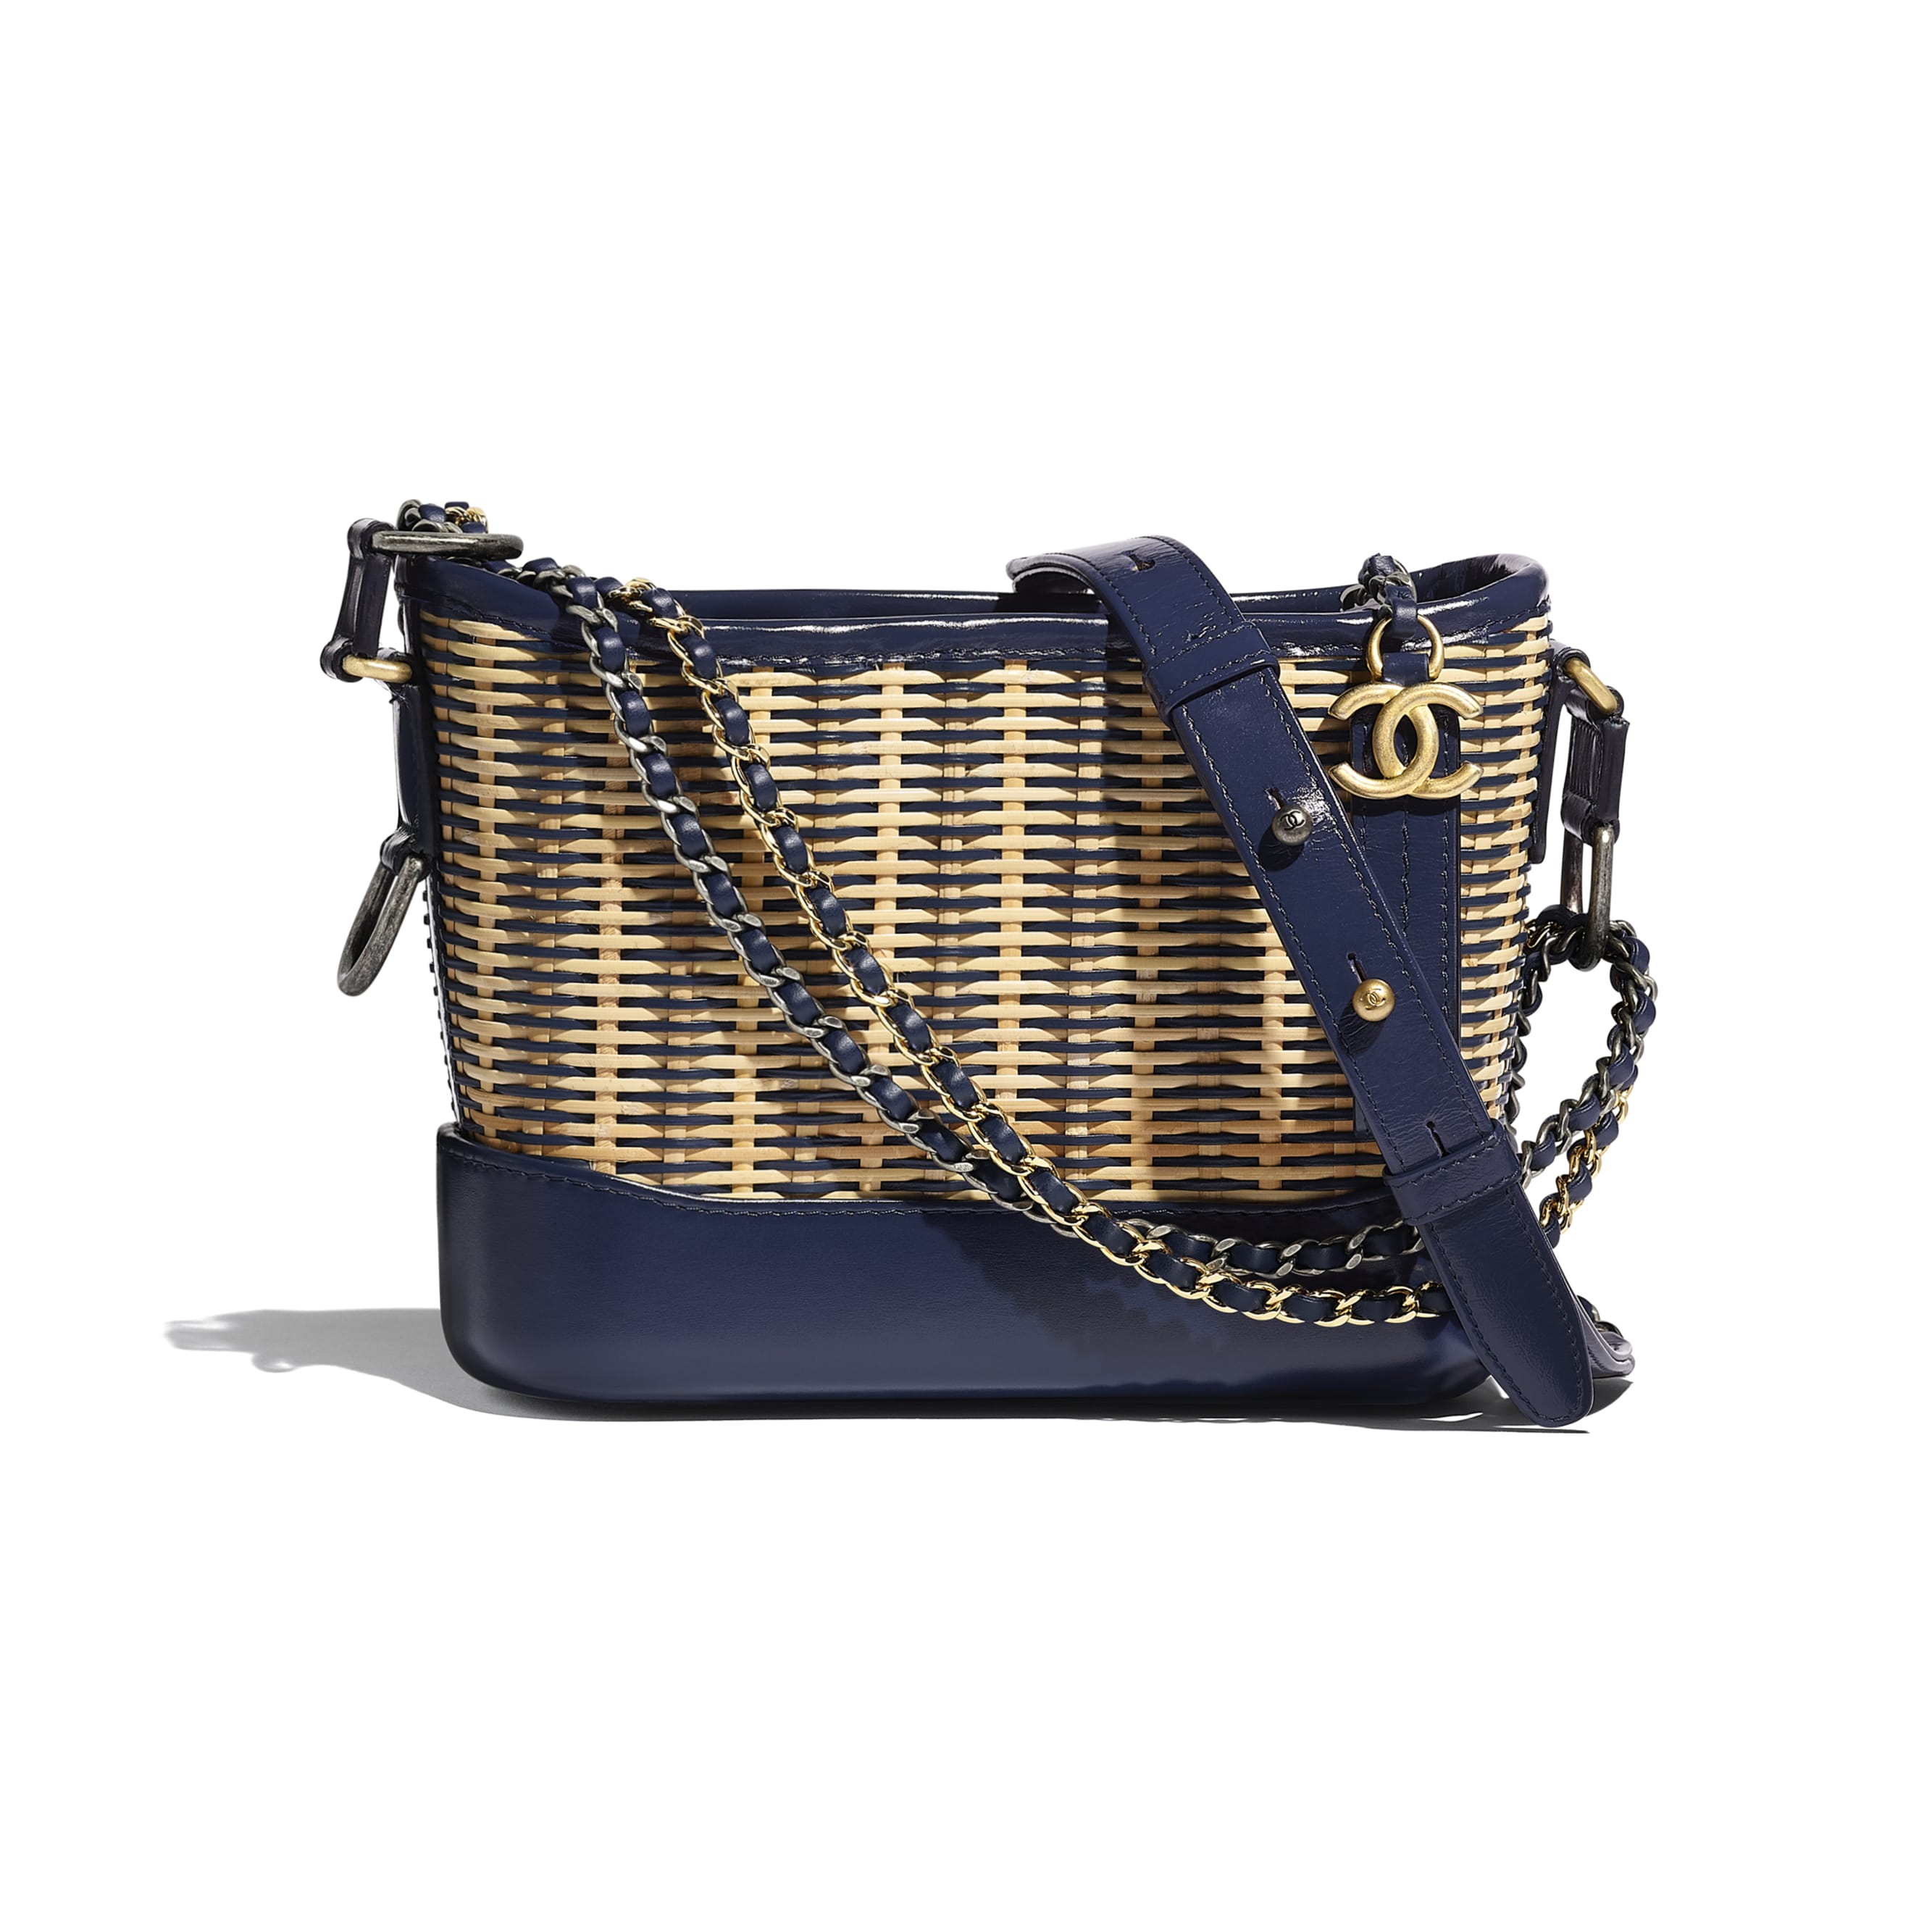 CHANEL'S GABRIELLE Small Hobo Bag - Beige & Navy Blue - Rattan, Calfskin, Gold-Tone & Silver-Tone Metal - CHANEL - Default view - see standard sized version